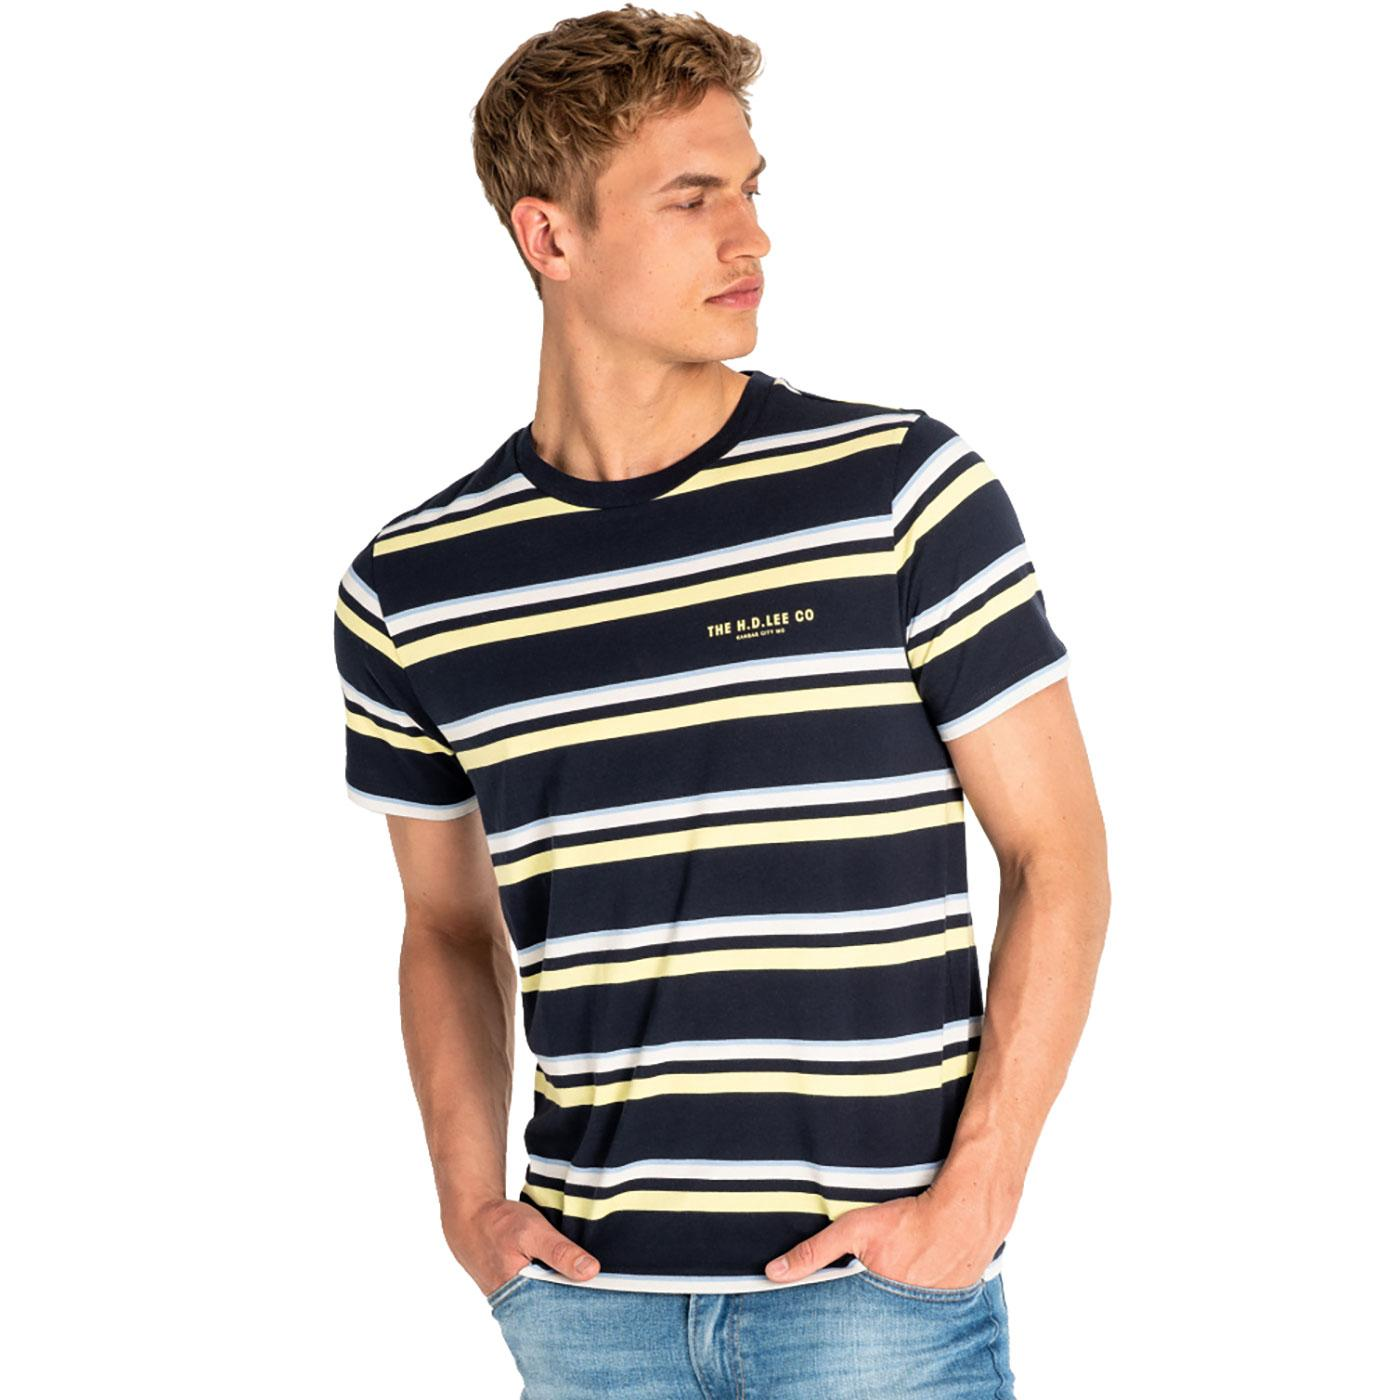 LEE JEANS Retro Multi Stripe T-Shirt SKY CAPTAIN